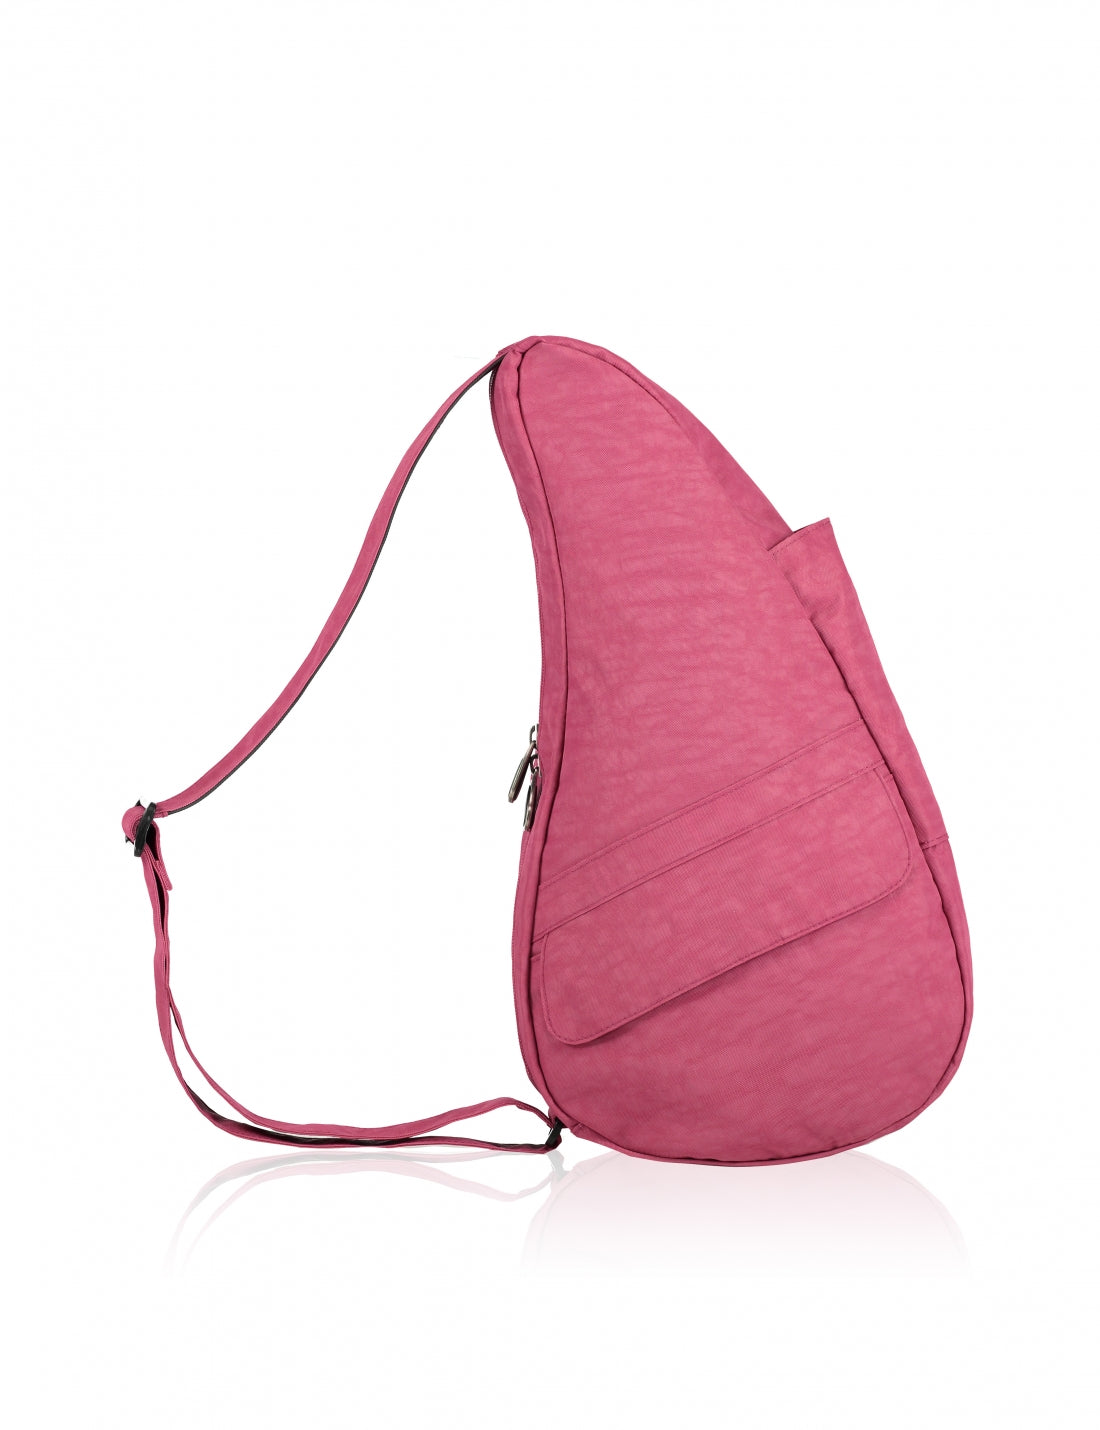 Healthy Back Bag Textured Nylon Bag in Cranberry